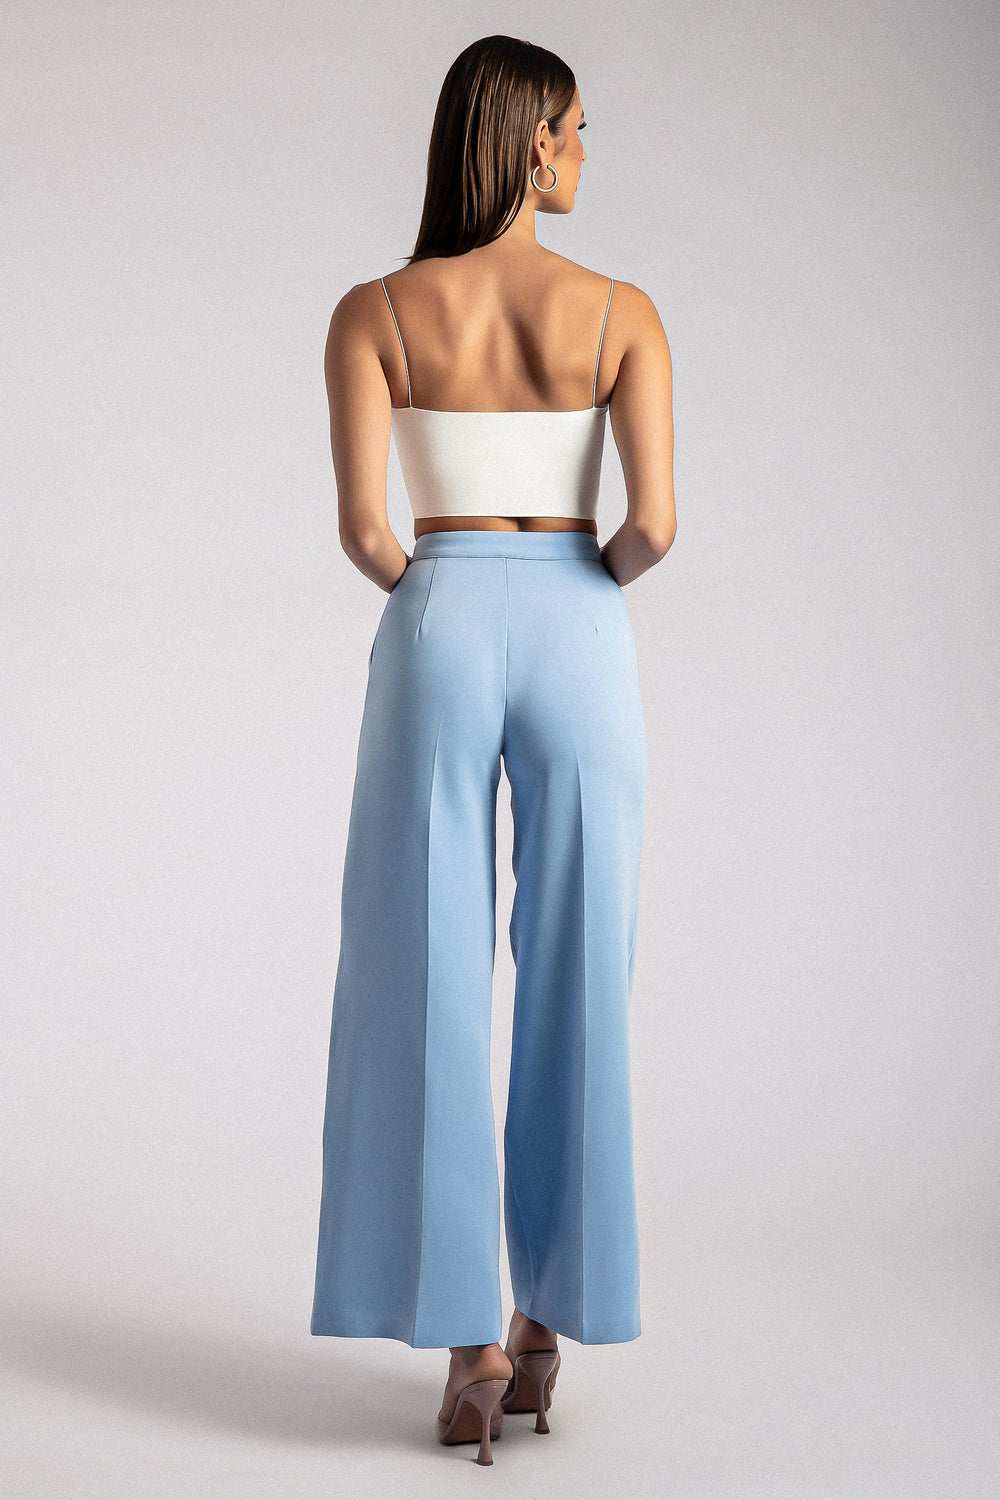 Alana Wide Leg High Waist Pants - Heritage Blue